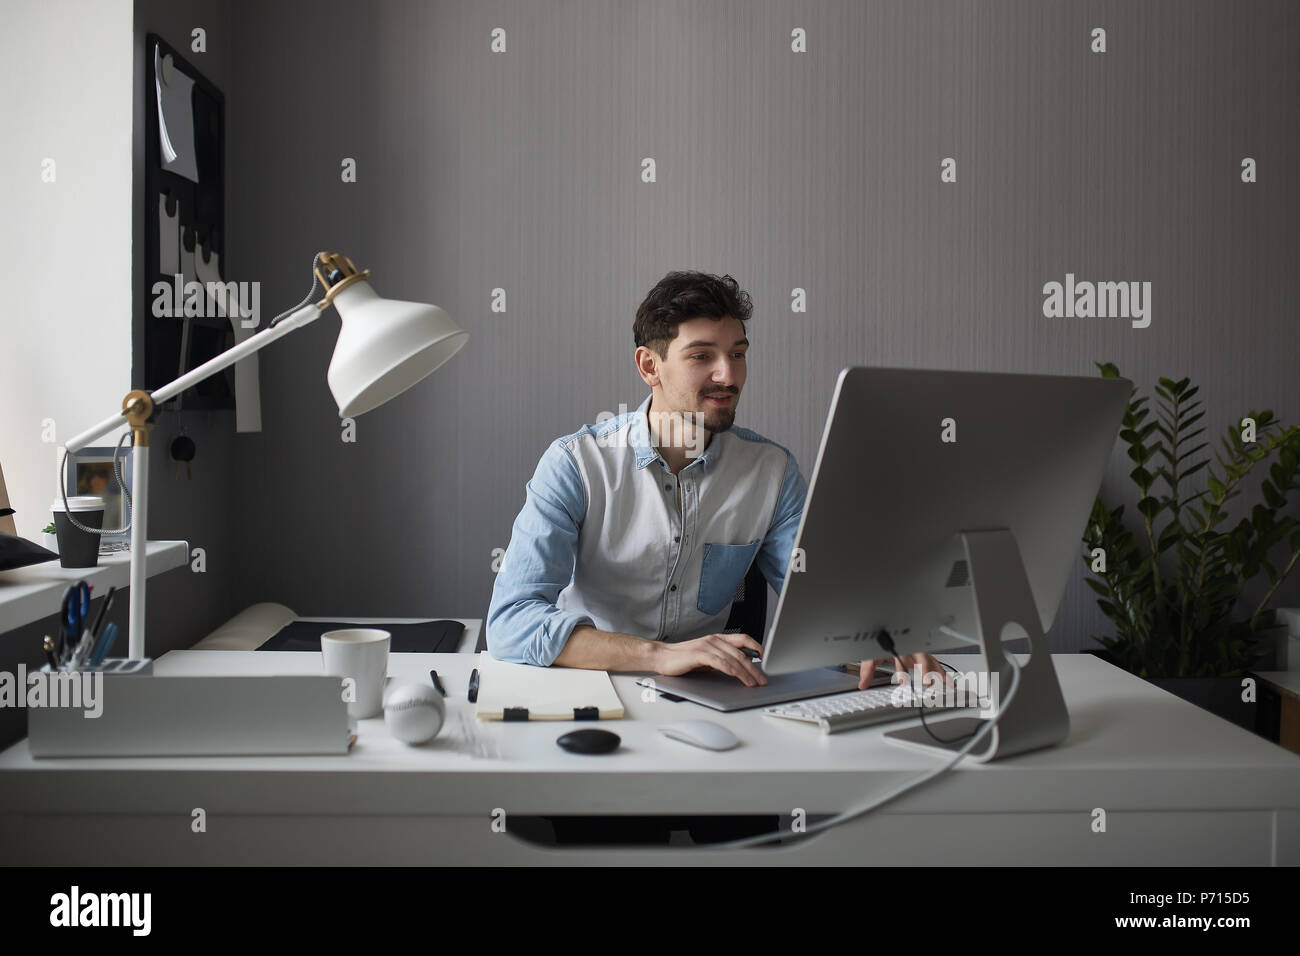 Young male designer using graphics tablet while working with com - Stock Image